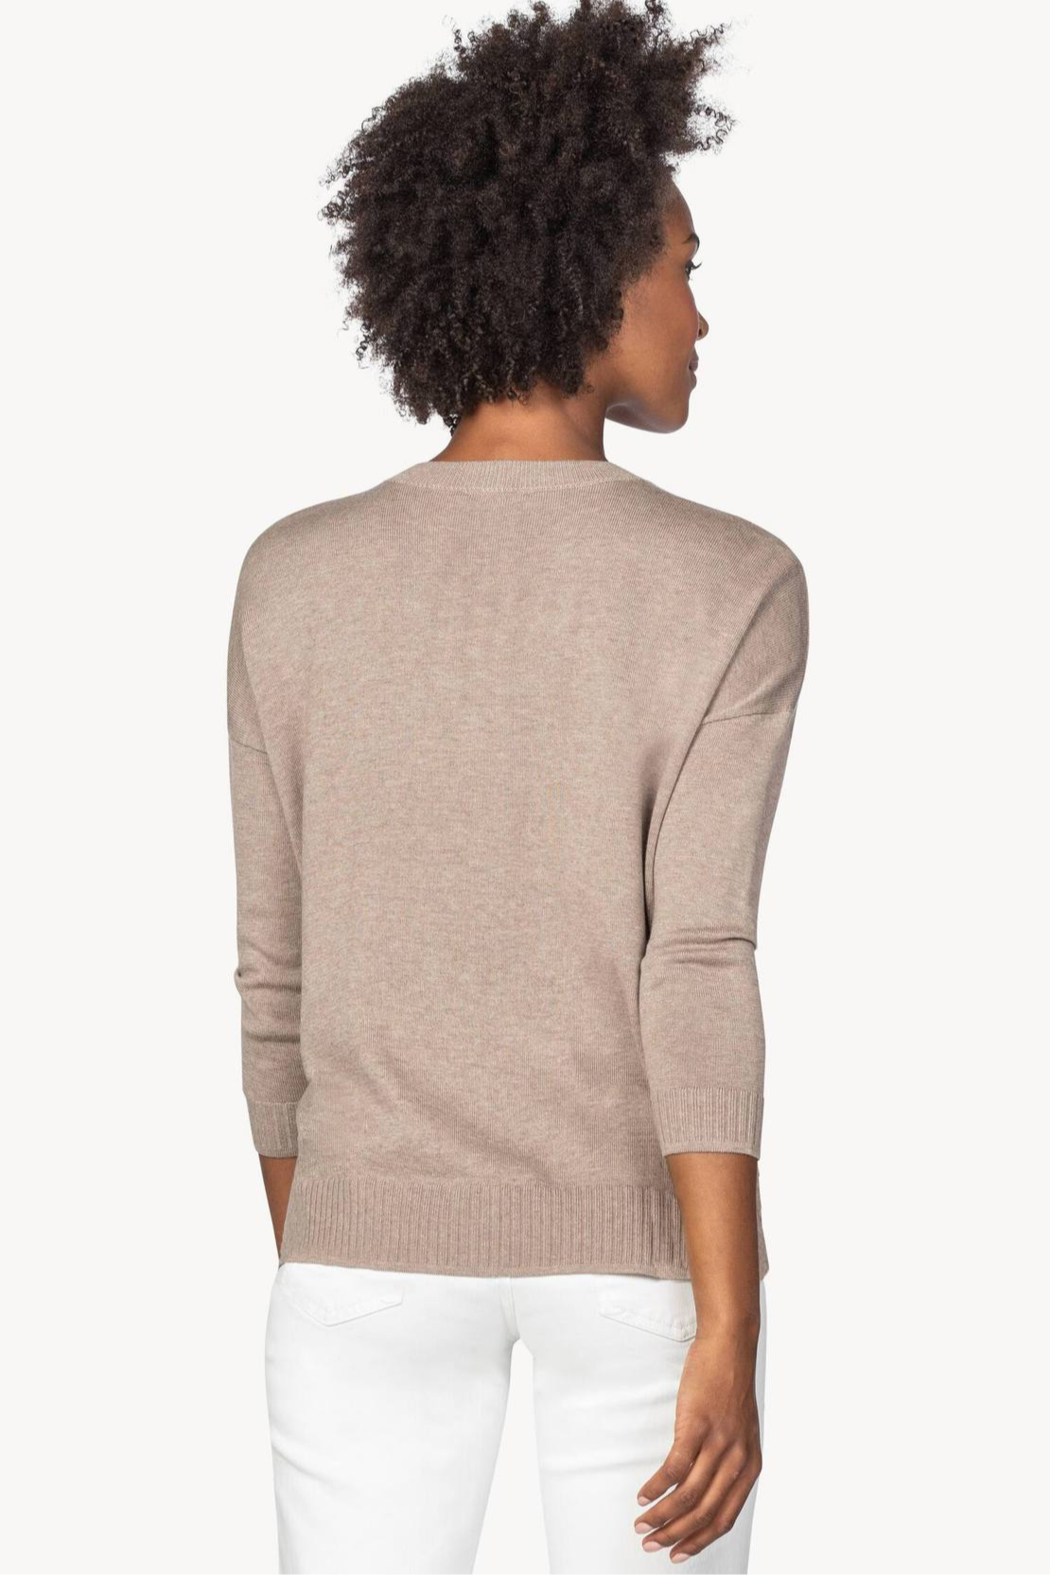 Lilla P PA1381 - Oversized Button Henley Sweater - Side Cropped Image